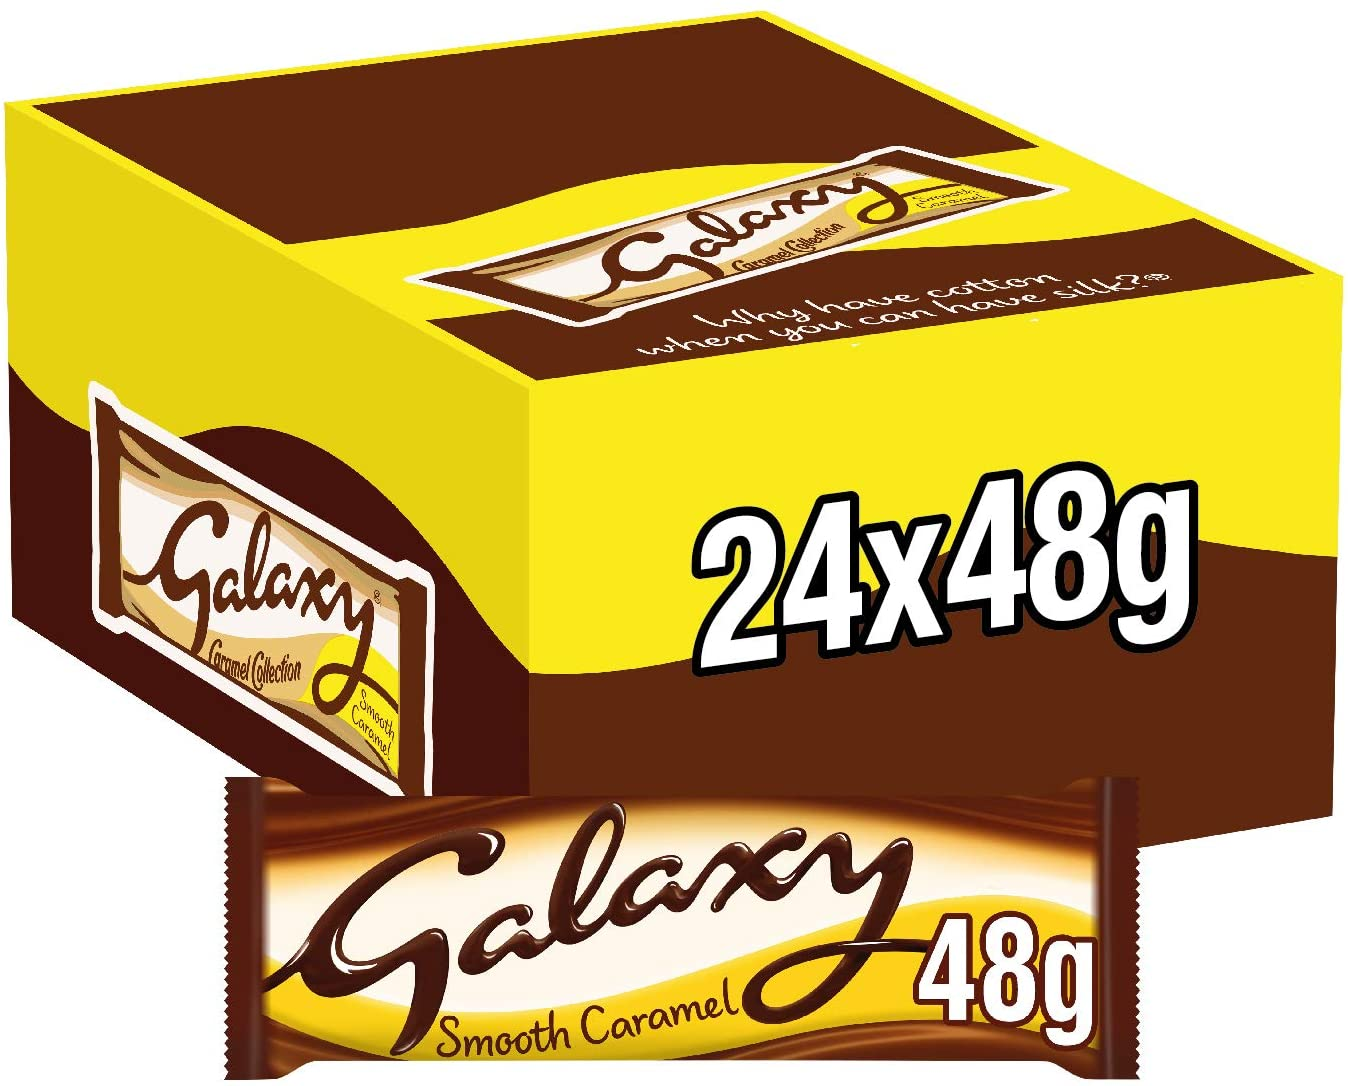 Everyone needs these amazing bulk boxes of Galaxy in their lives